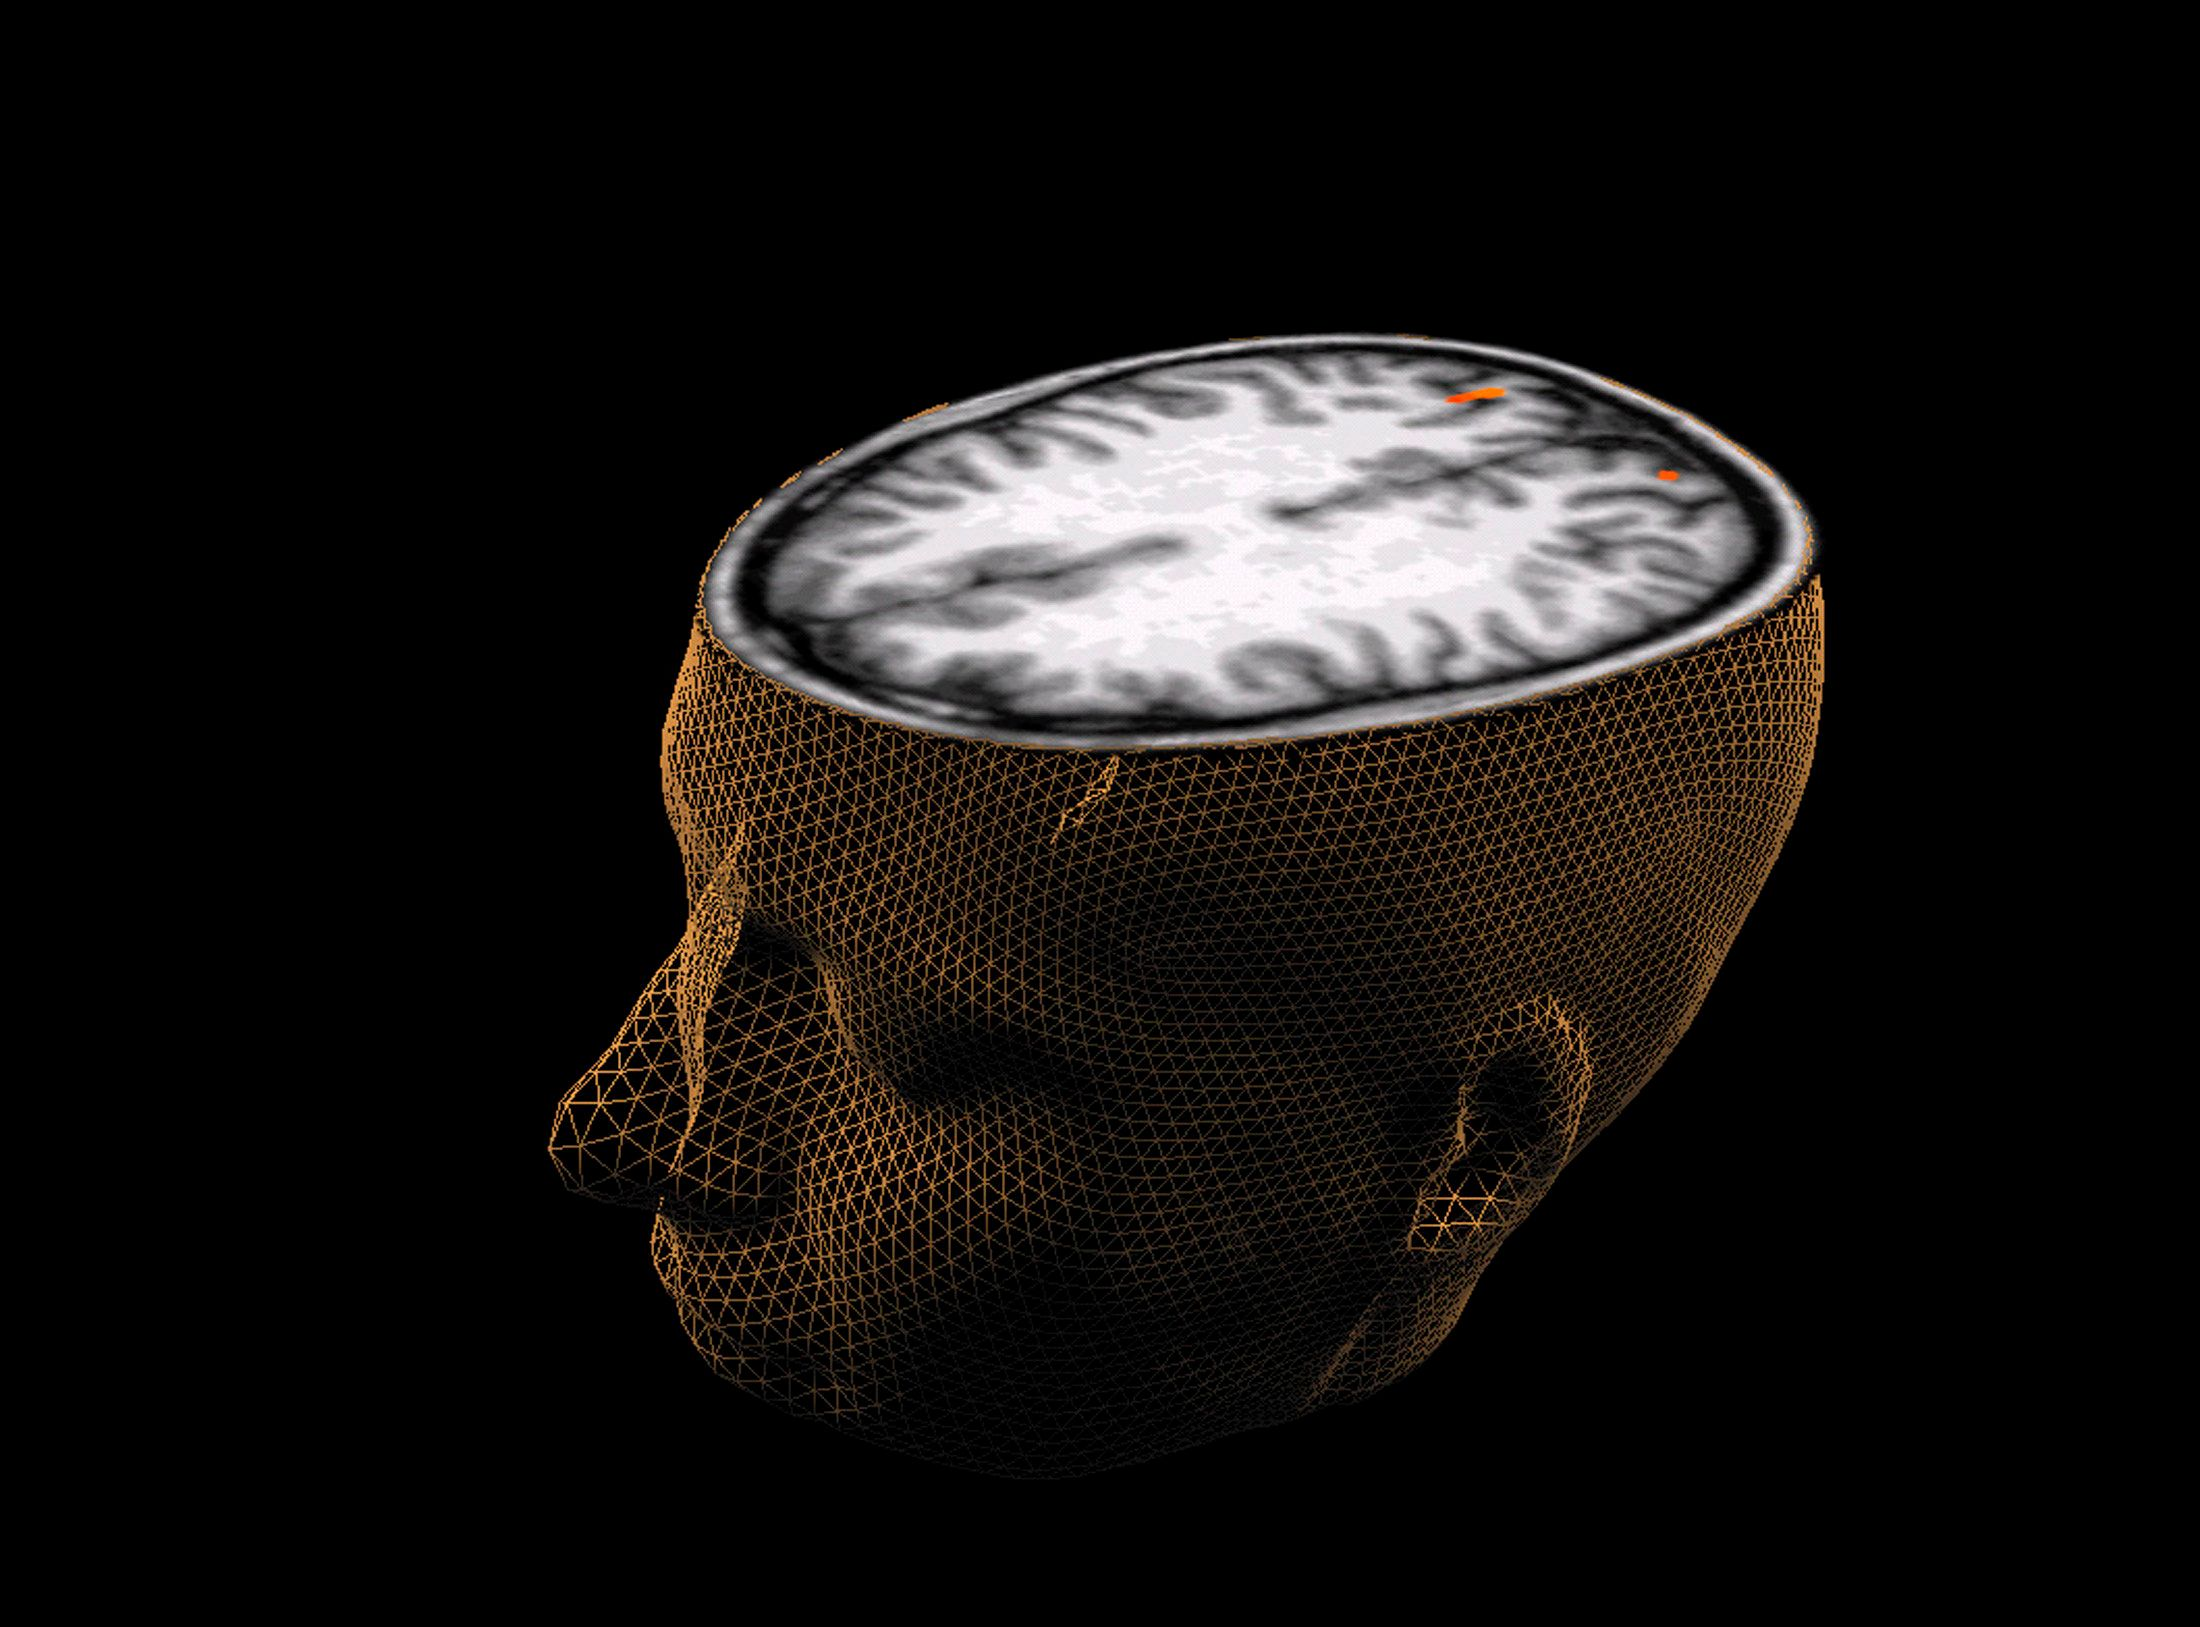 The Brains Of Psychopaths May Be Wired Differently Than Yours Or